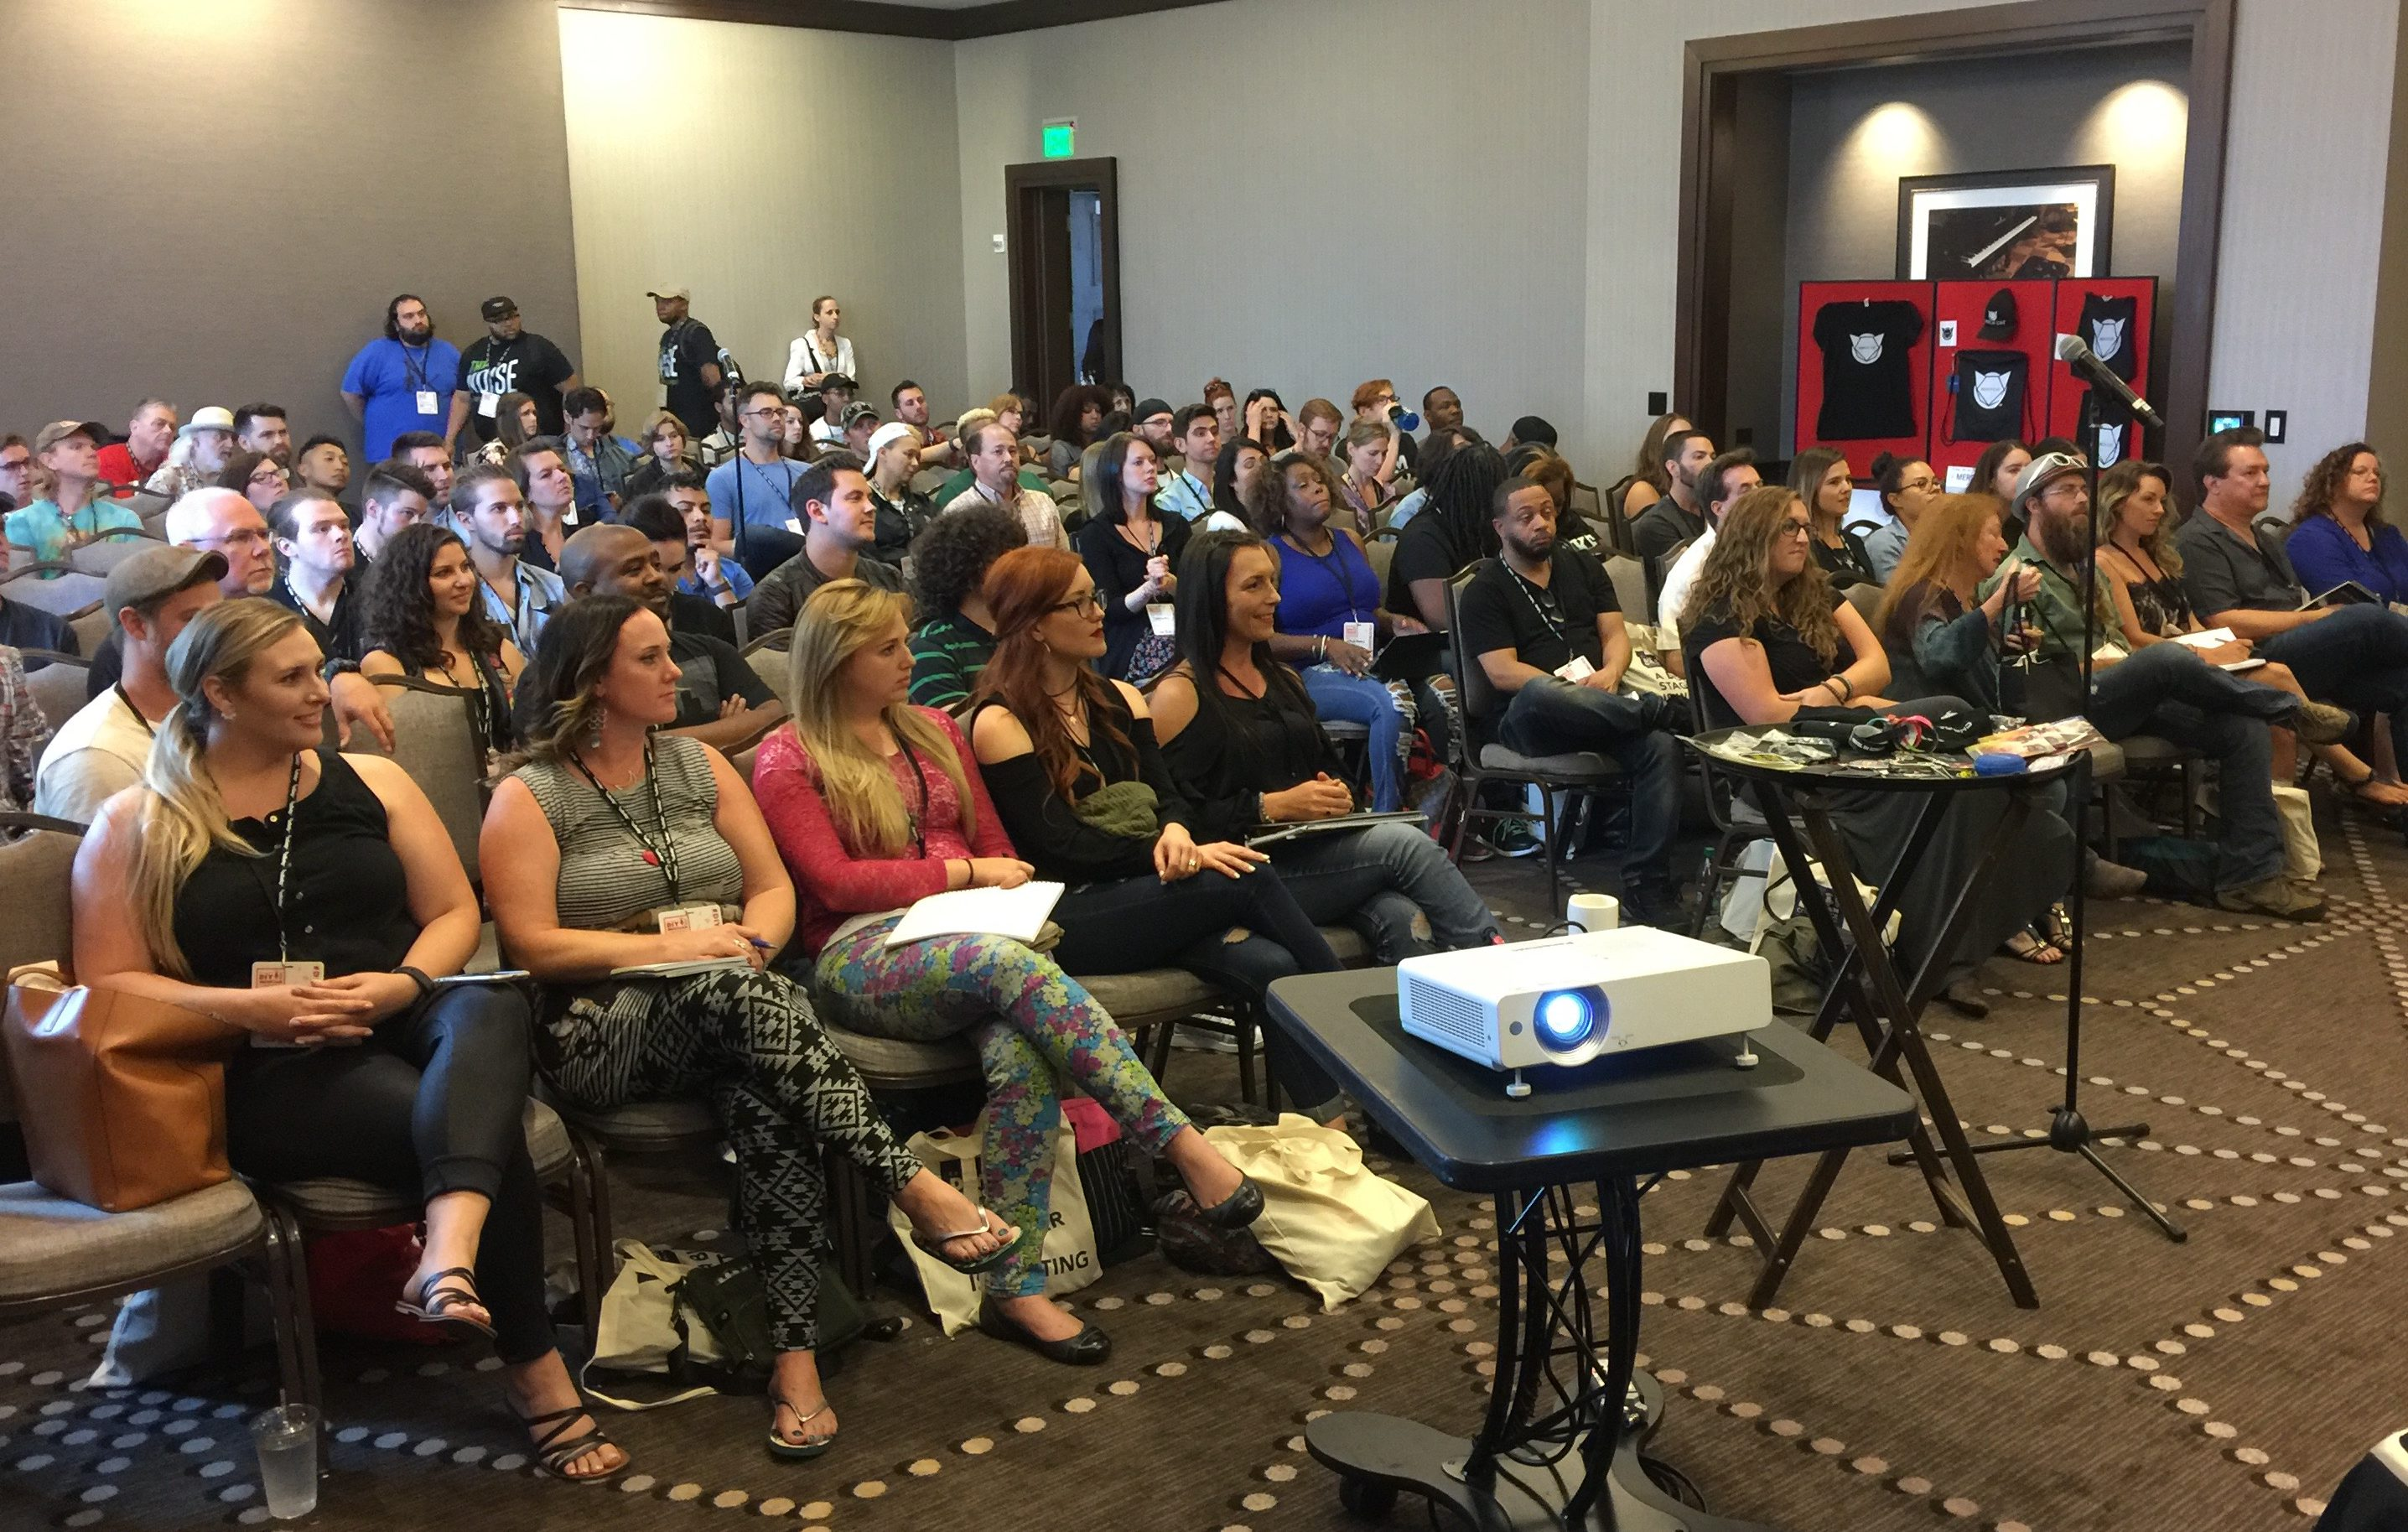 Photo of standing room only crowd for Merch Cat's session at CD Baby's DIY Musicians Conference 2017 in Nashville, Tennessee